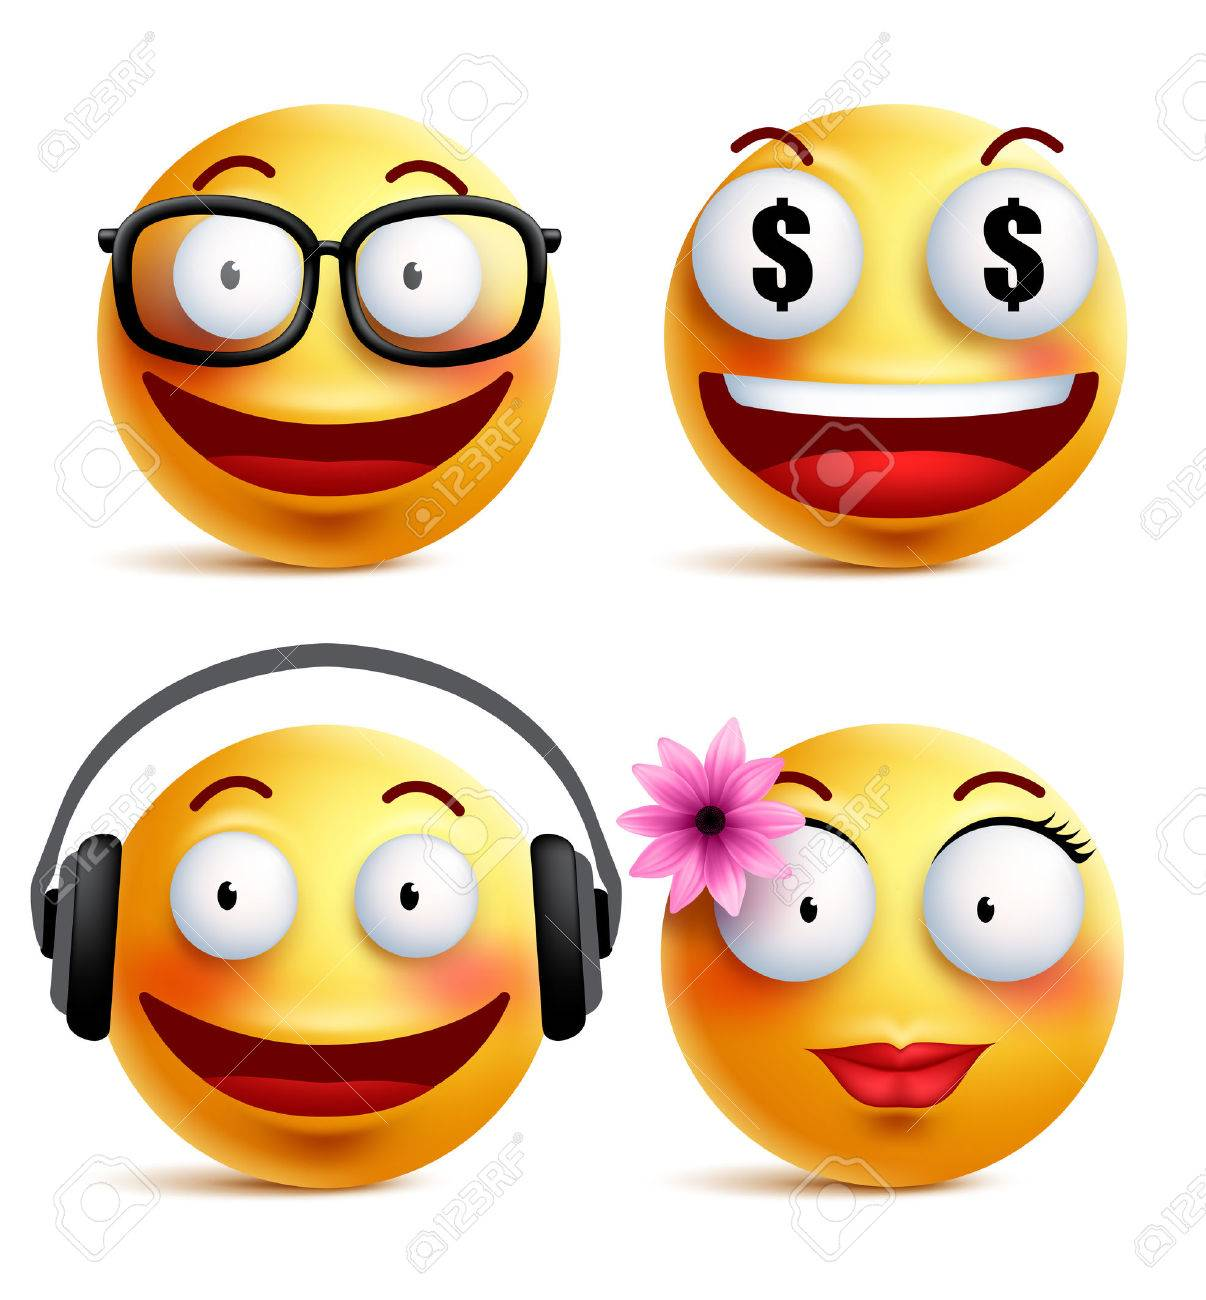 emoji yellow emoticons or smiley faces collection with funny